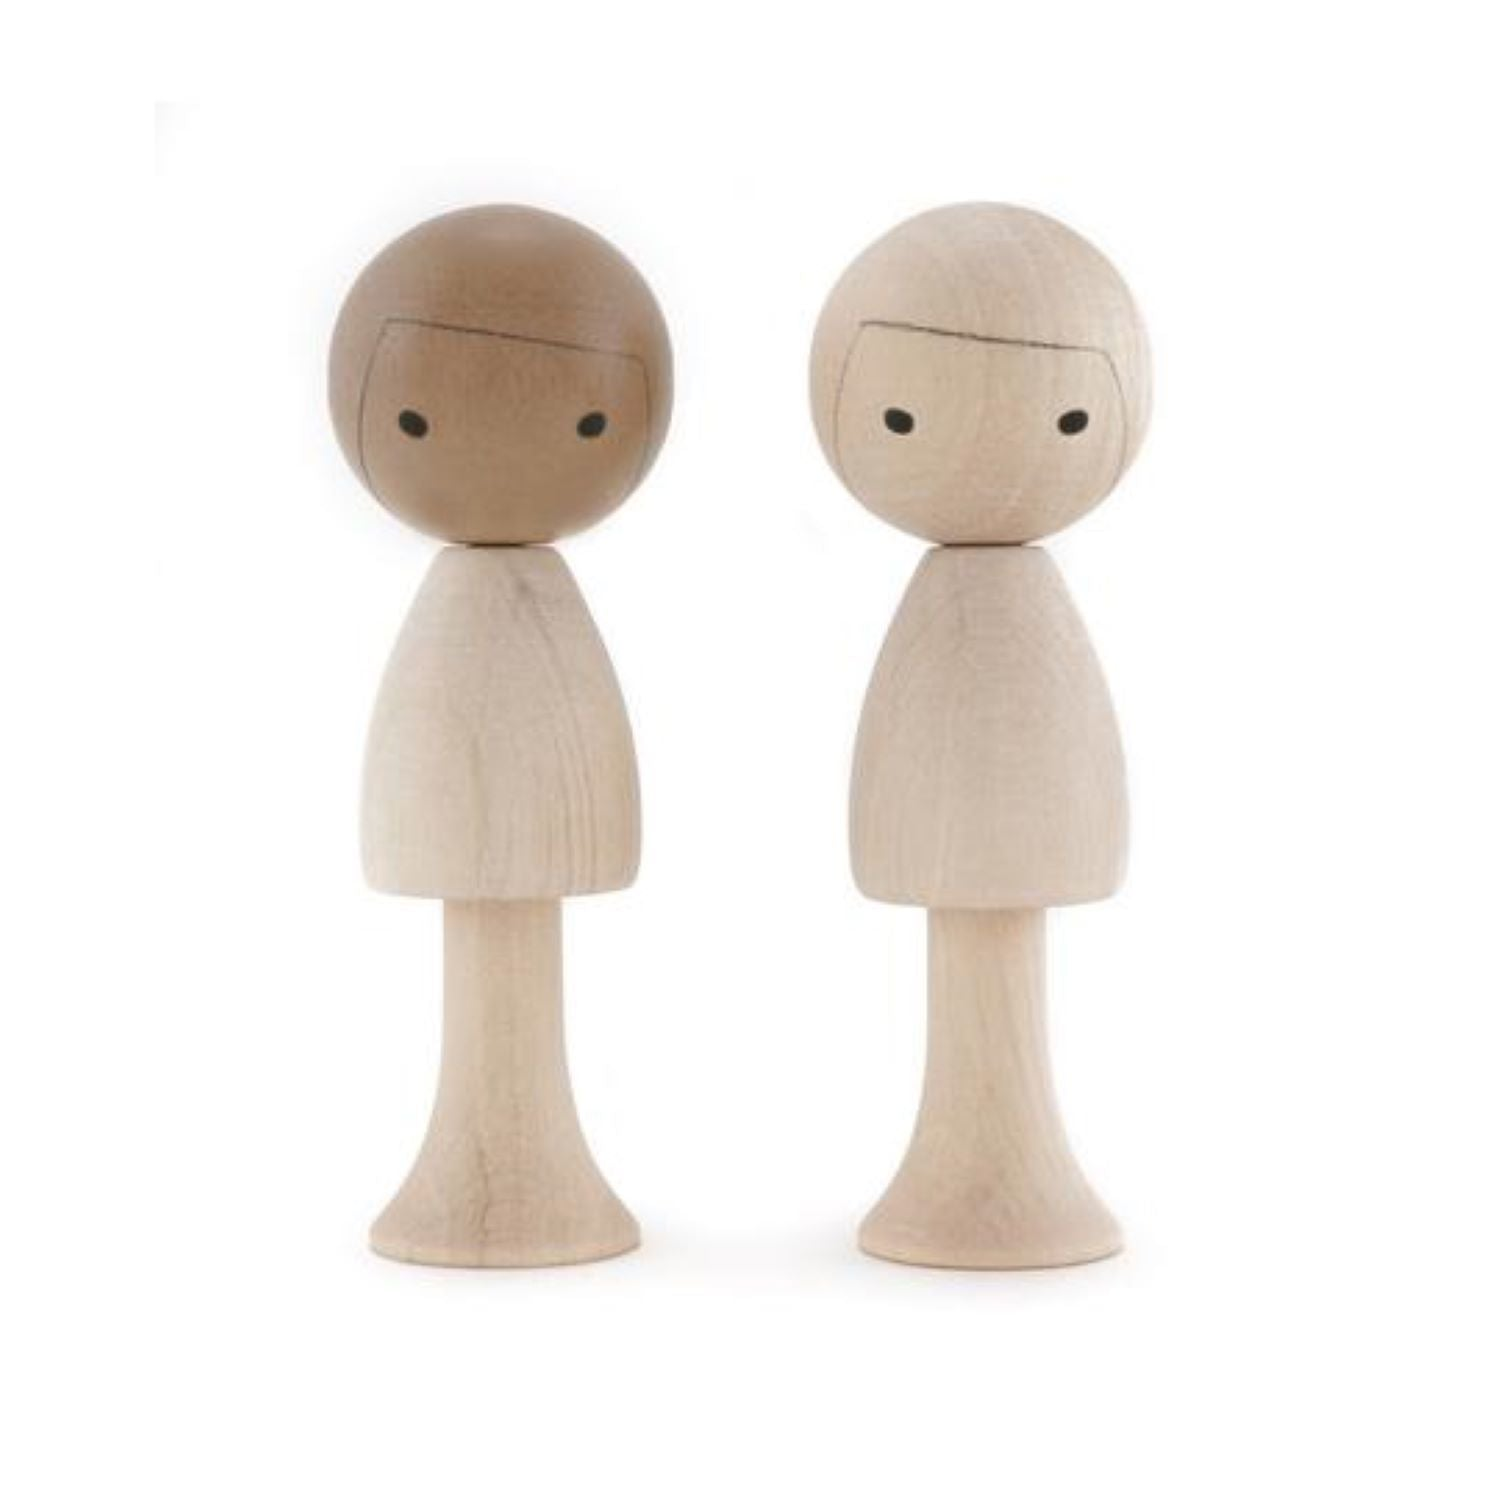 Clicques - DIY Boys Asia - Wooden Figurines